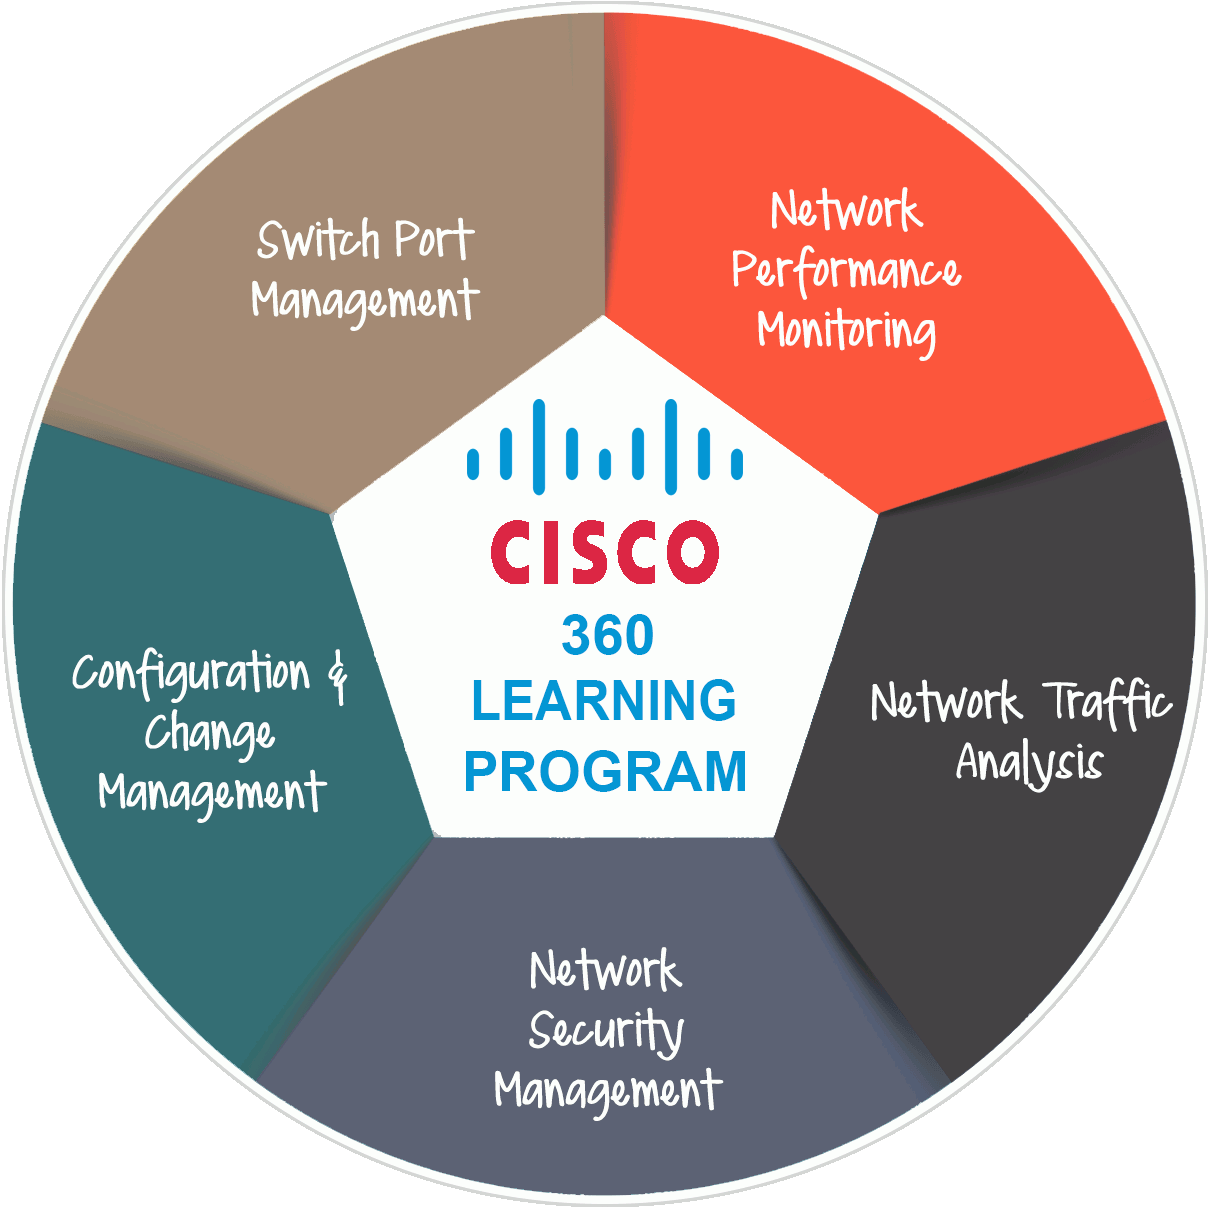 CCNA Training, CCNA Certification, CCNP Training, CCNP Certification, CCIE Training, CCIE Certification, Networking Training